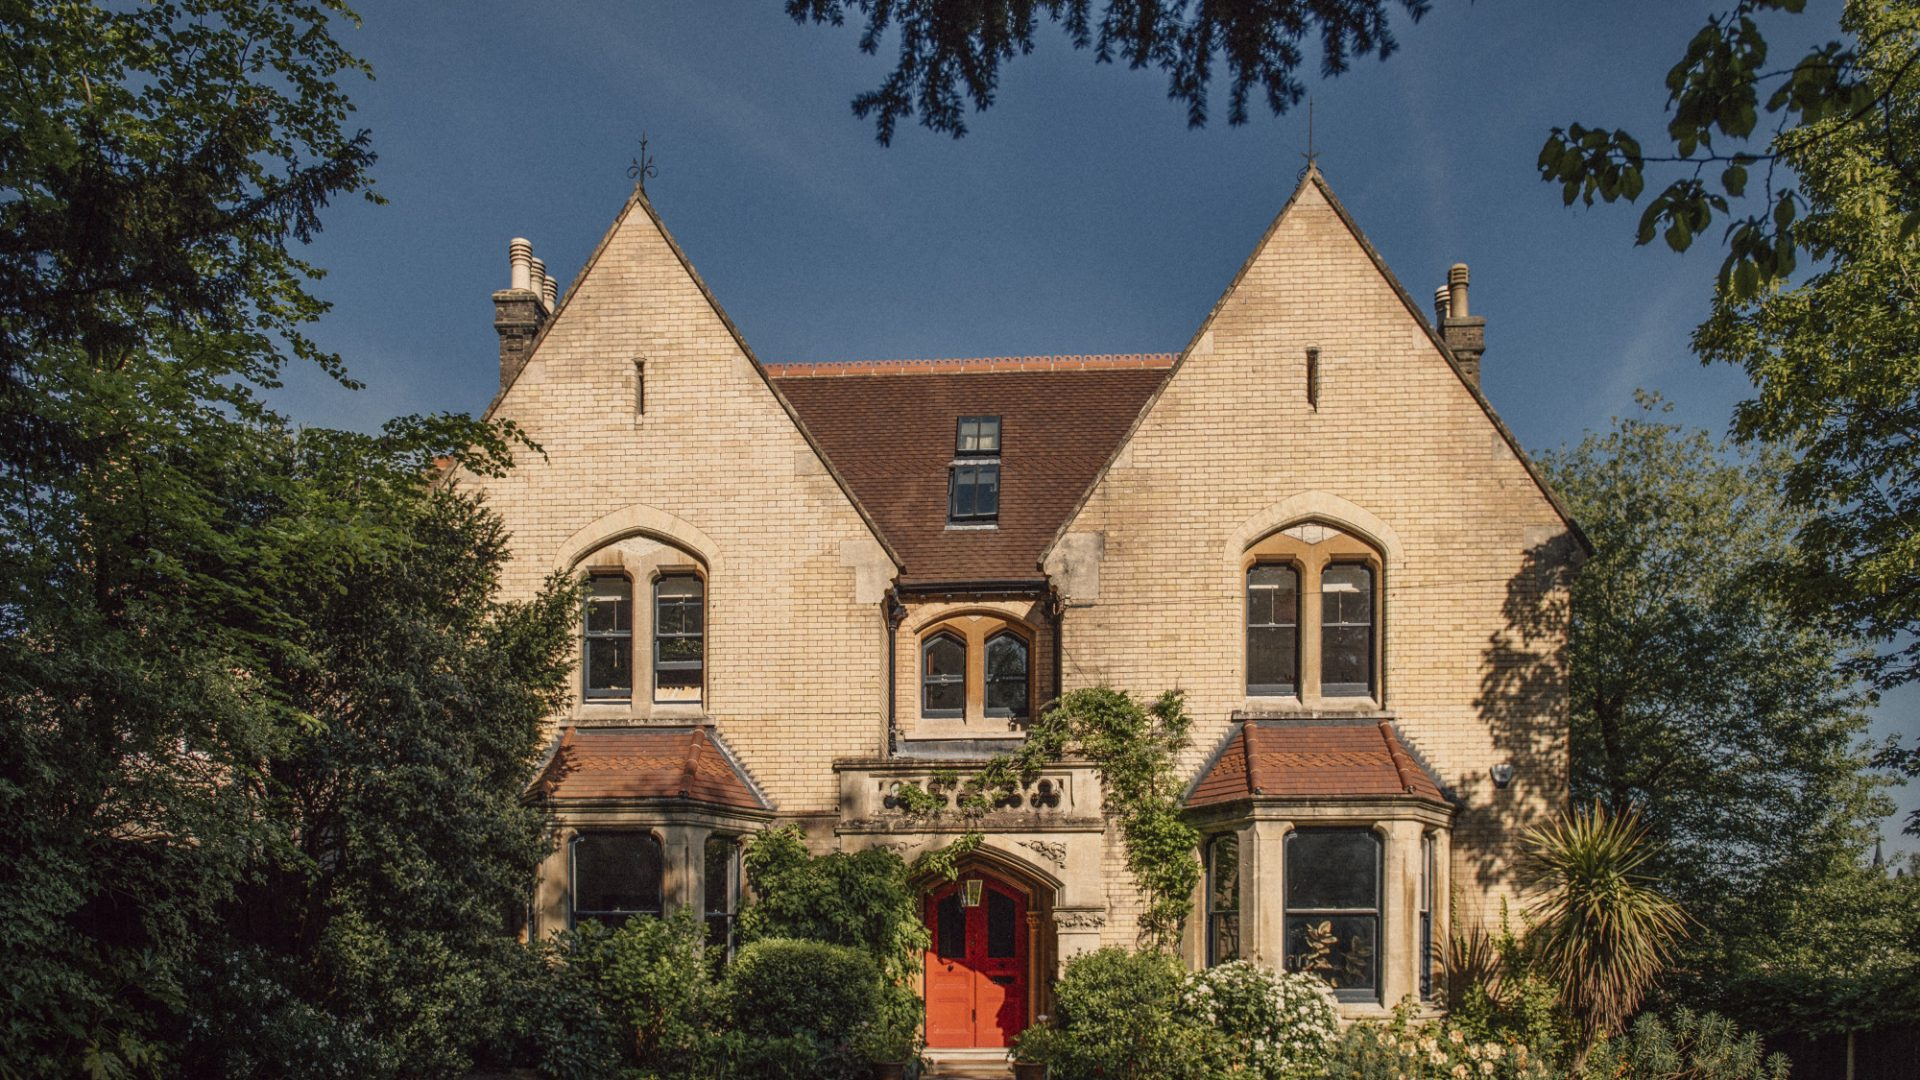 Riddings Court, Caterham for sale with Mr and Mrs Clarke estate agent